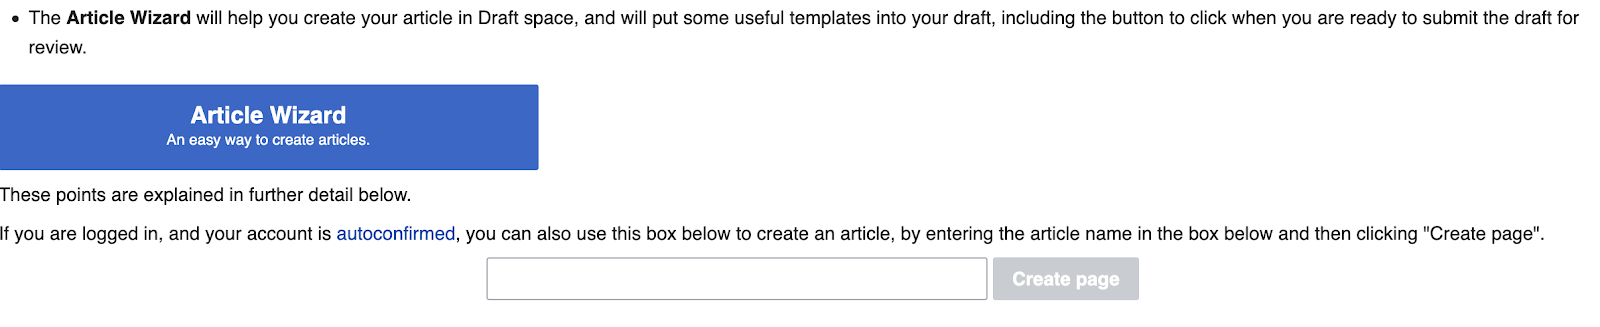 creating a wikipedia page for your company: create page